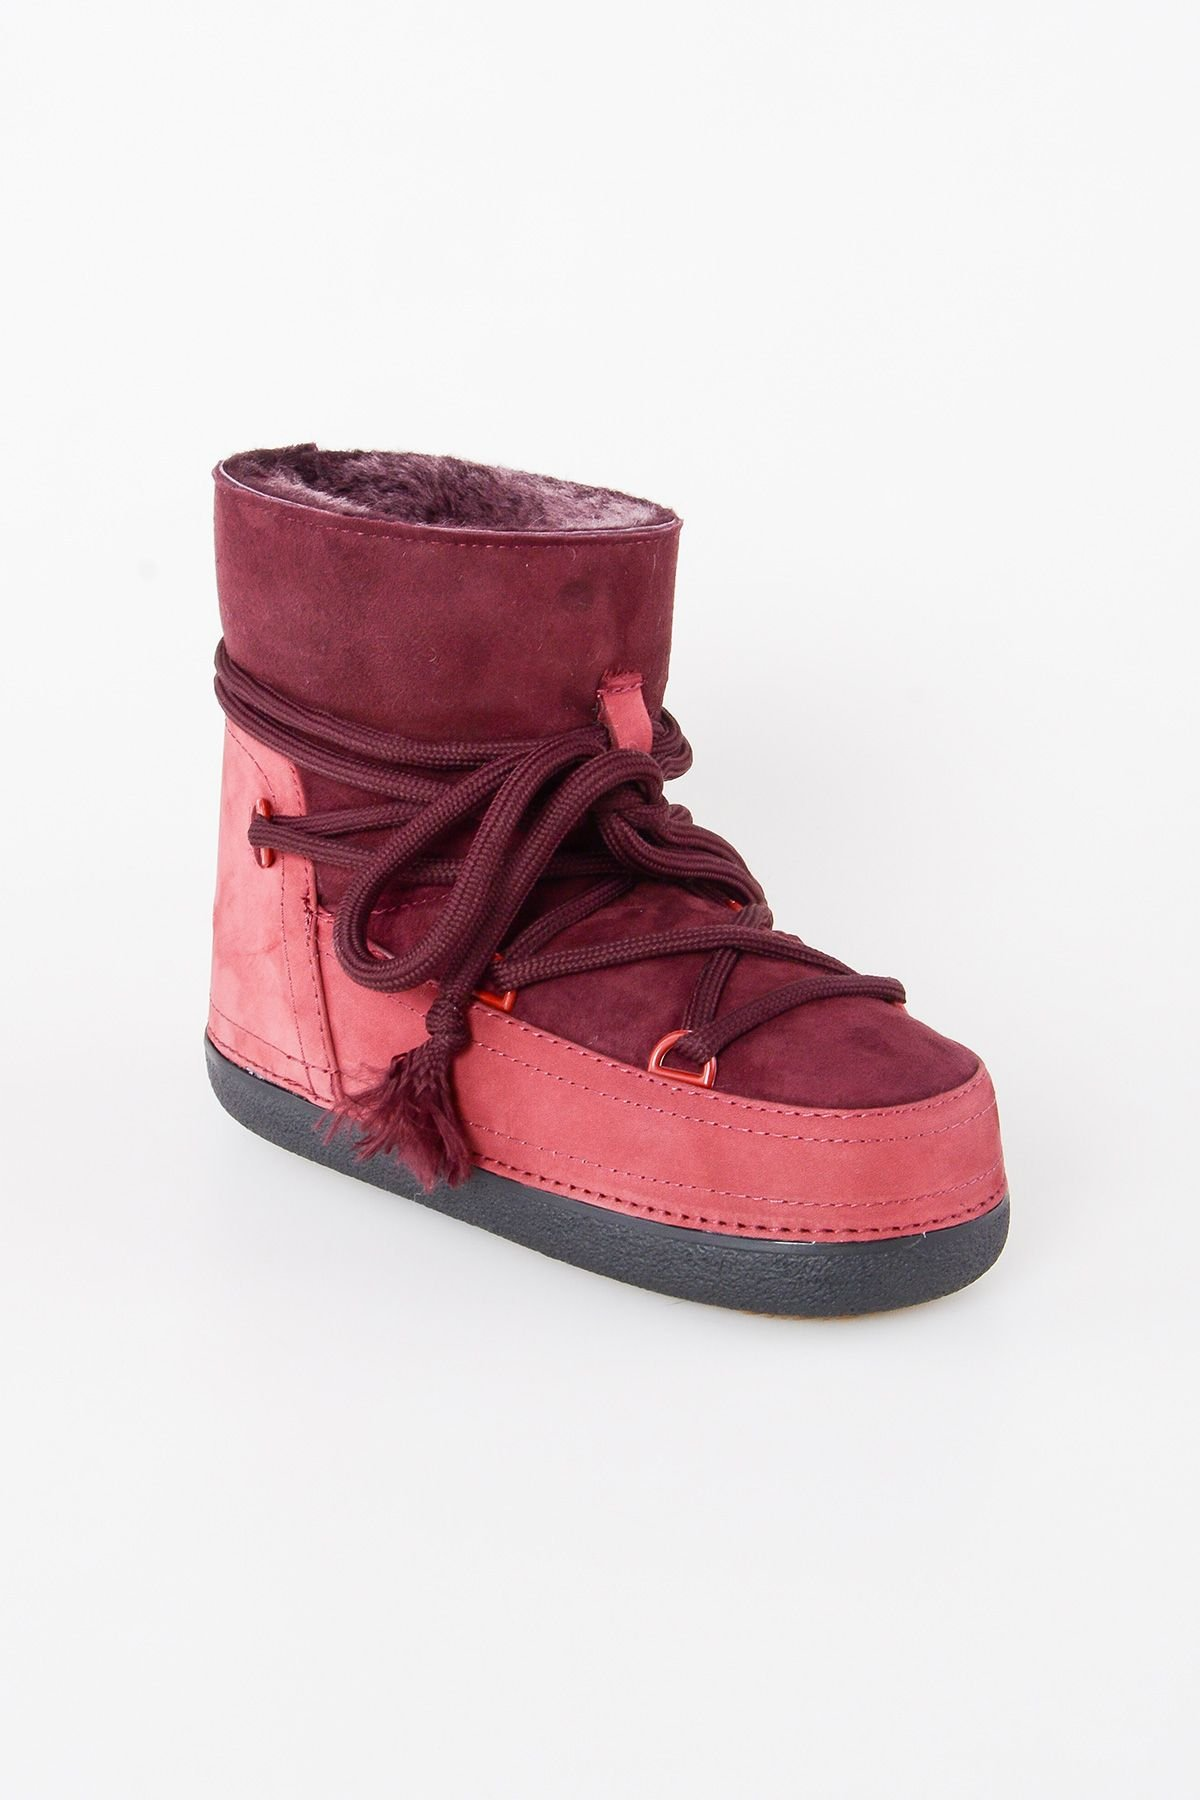 Cool Moon Genuine Suede & Shearling Women's Snowboots 251016 Claret red